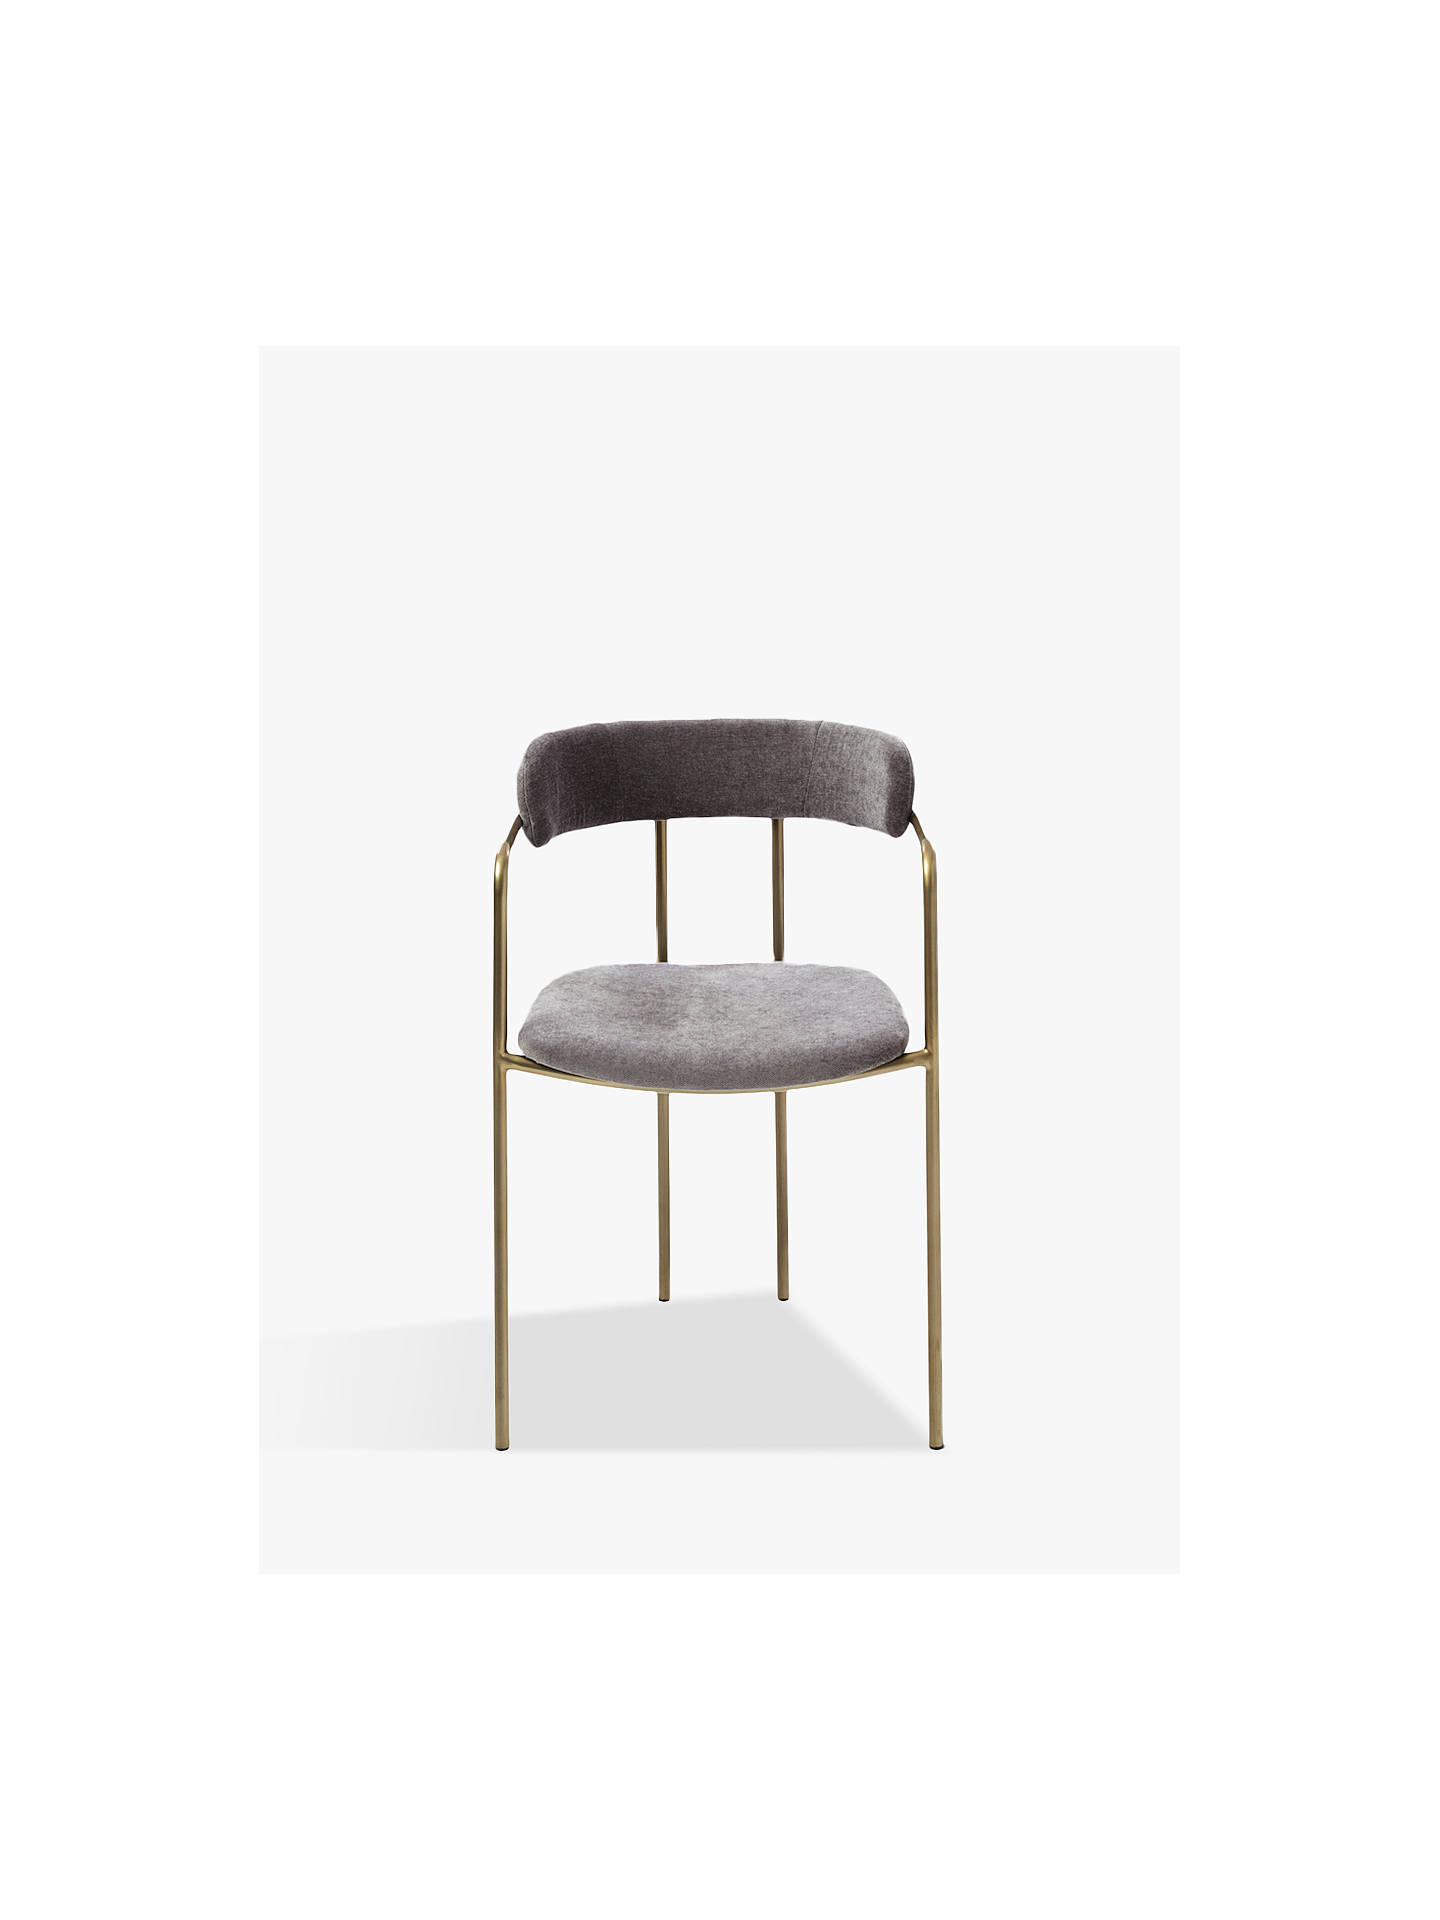 Stupendous West Elm Lenox Dining Chair Grey Beatyapartments Chair Design Images Beatyapartmentscom